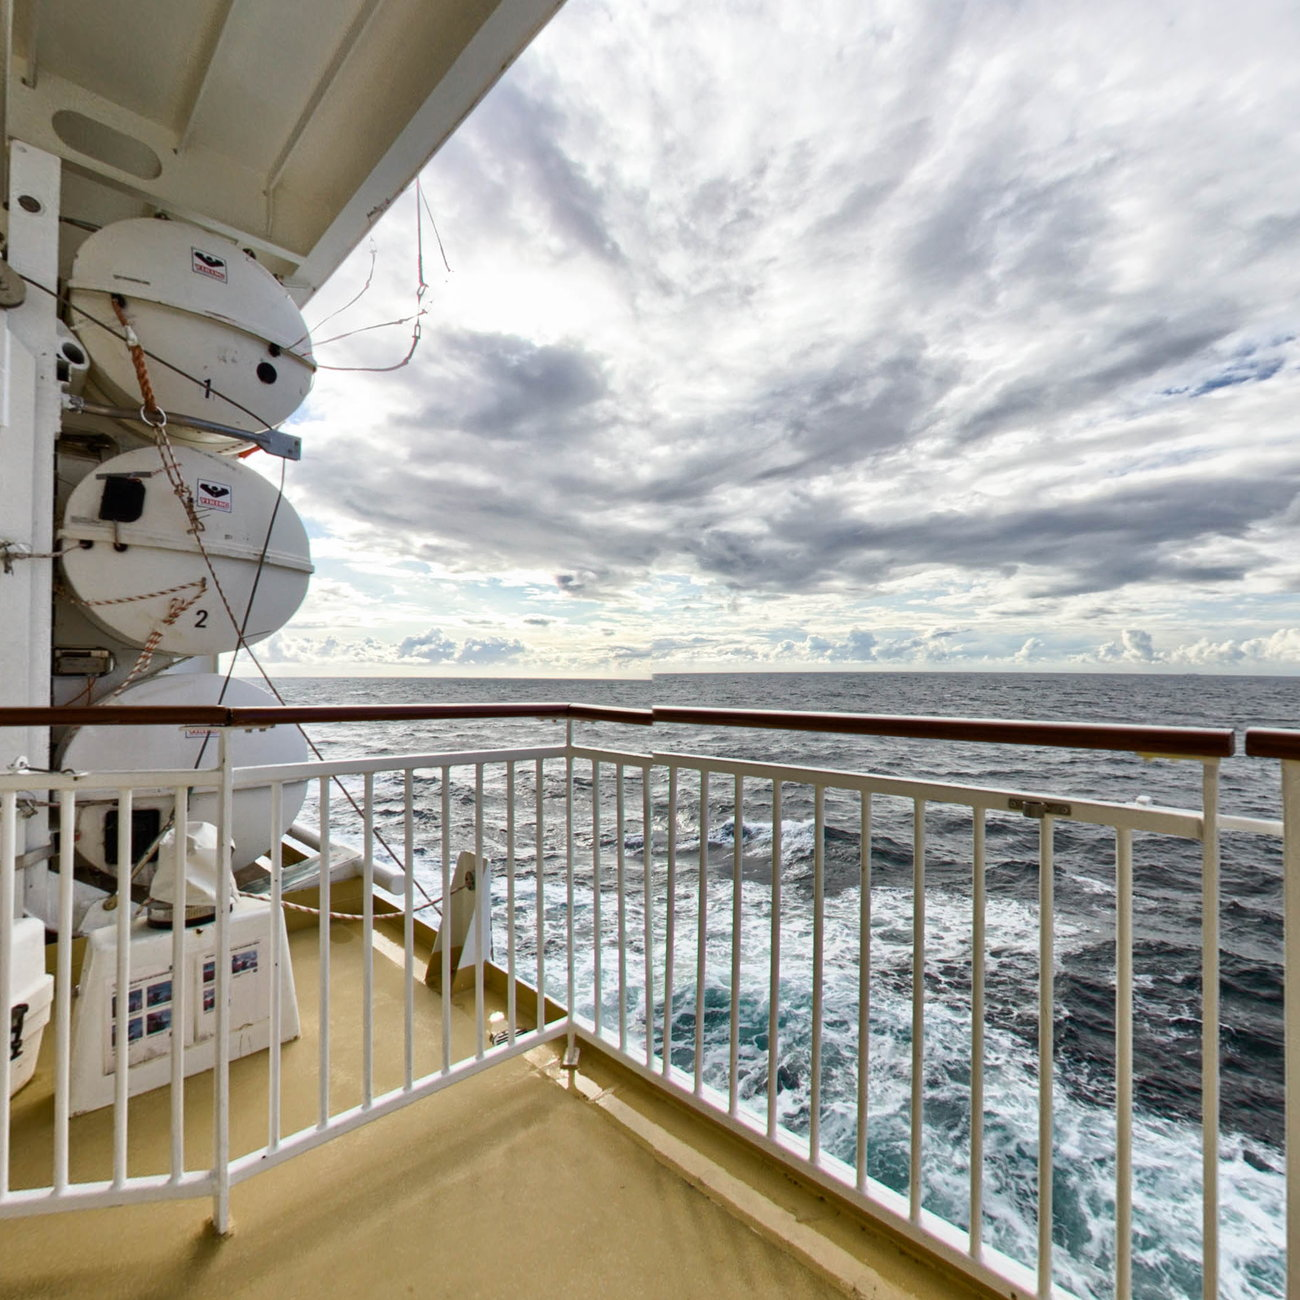 Panorama of The Promenade Deck on Norwegian Jade